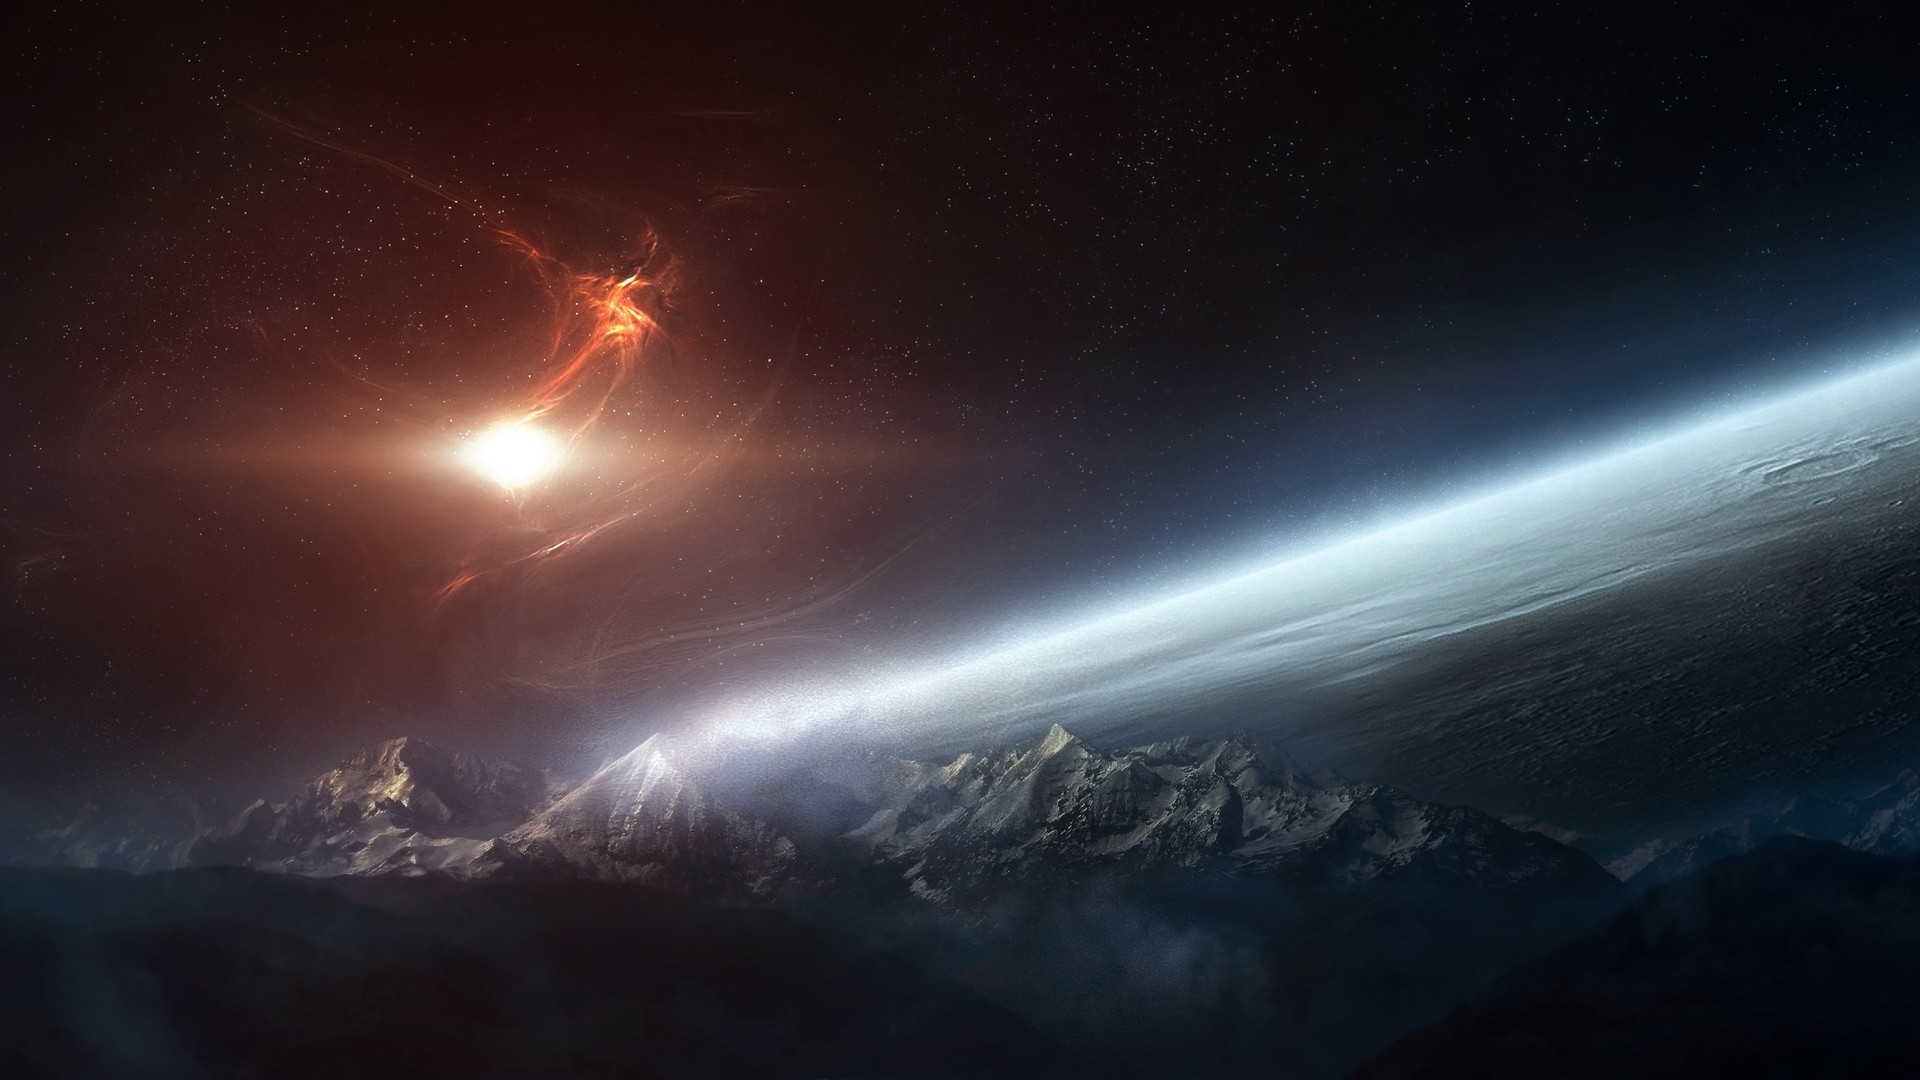 Outer Space HD Wallpaper » FullHDWpp – Full HD Wallpapers